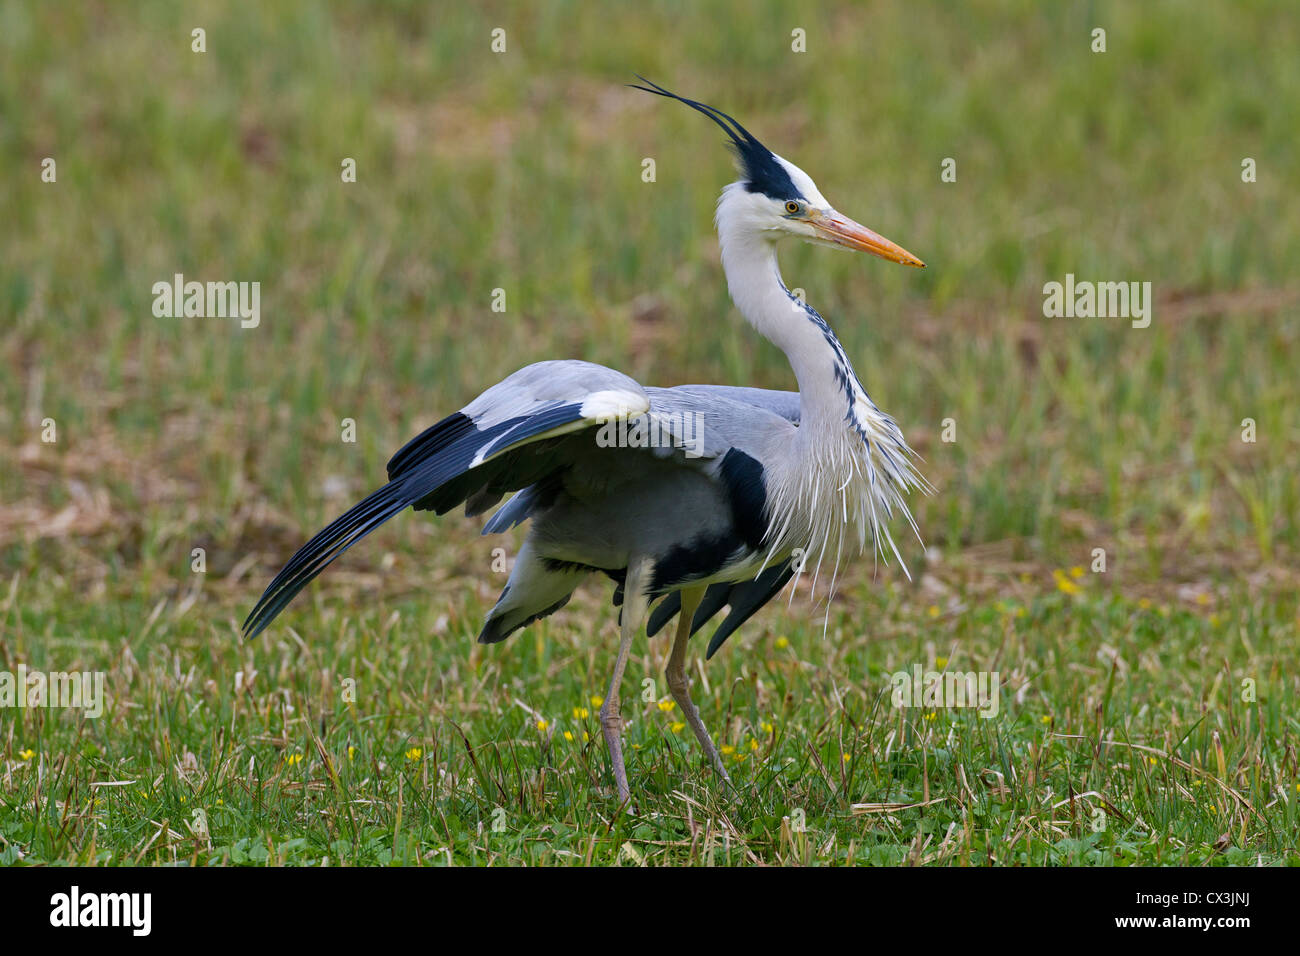 Grey Heron (Ardea cinerea) displaying by raising crest feathers in meadow, Germany - Stock Image